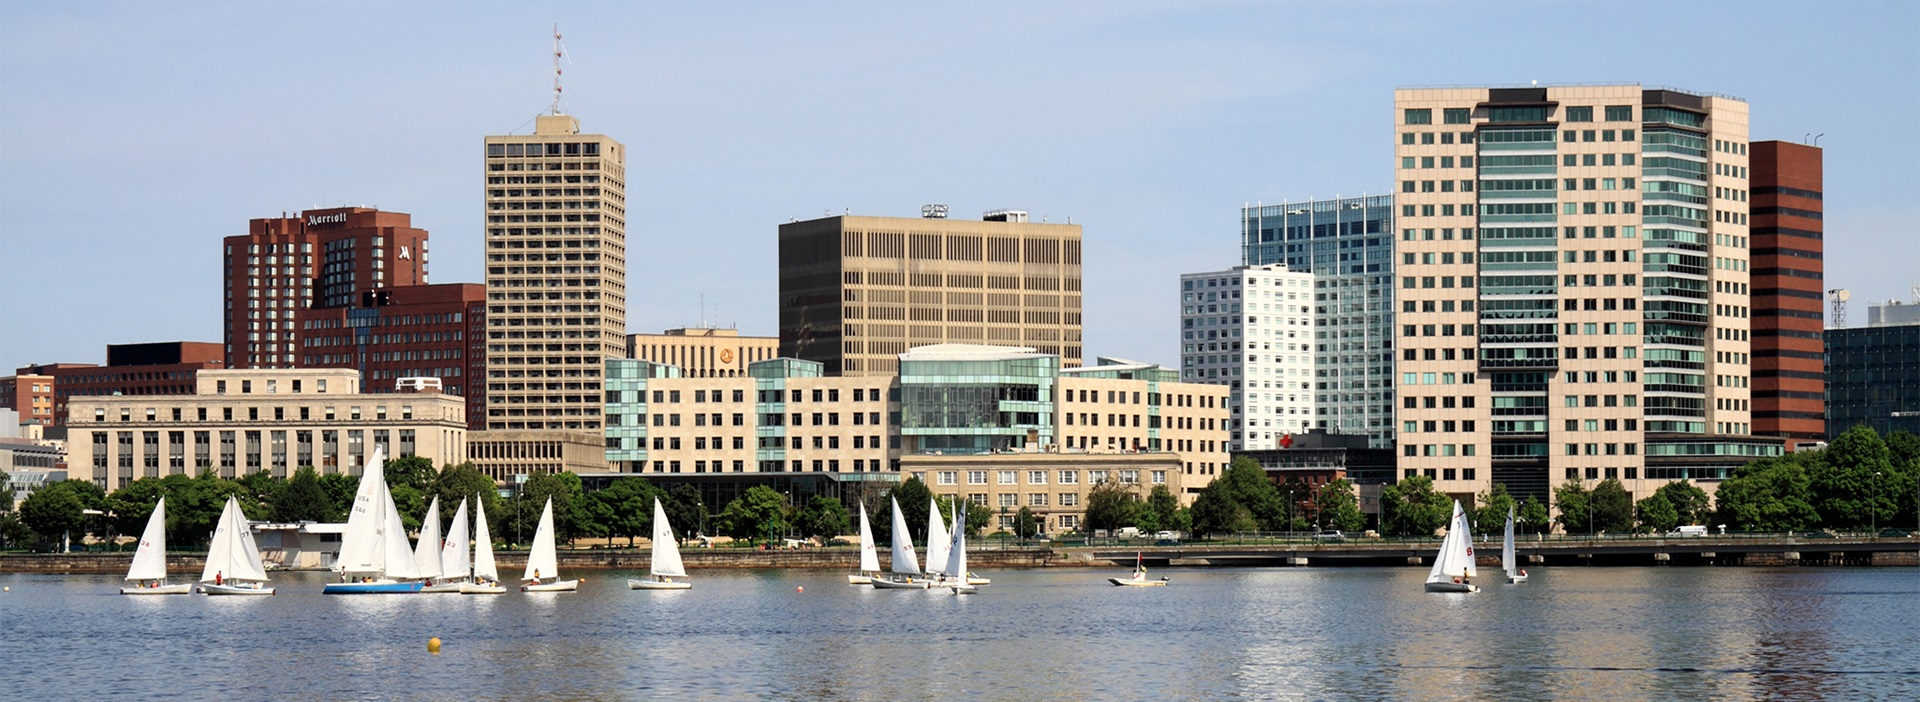 Sell Land in Cambridge MA Fast